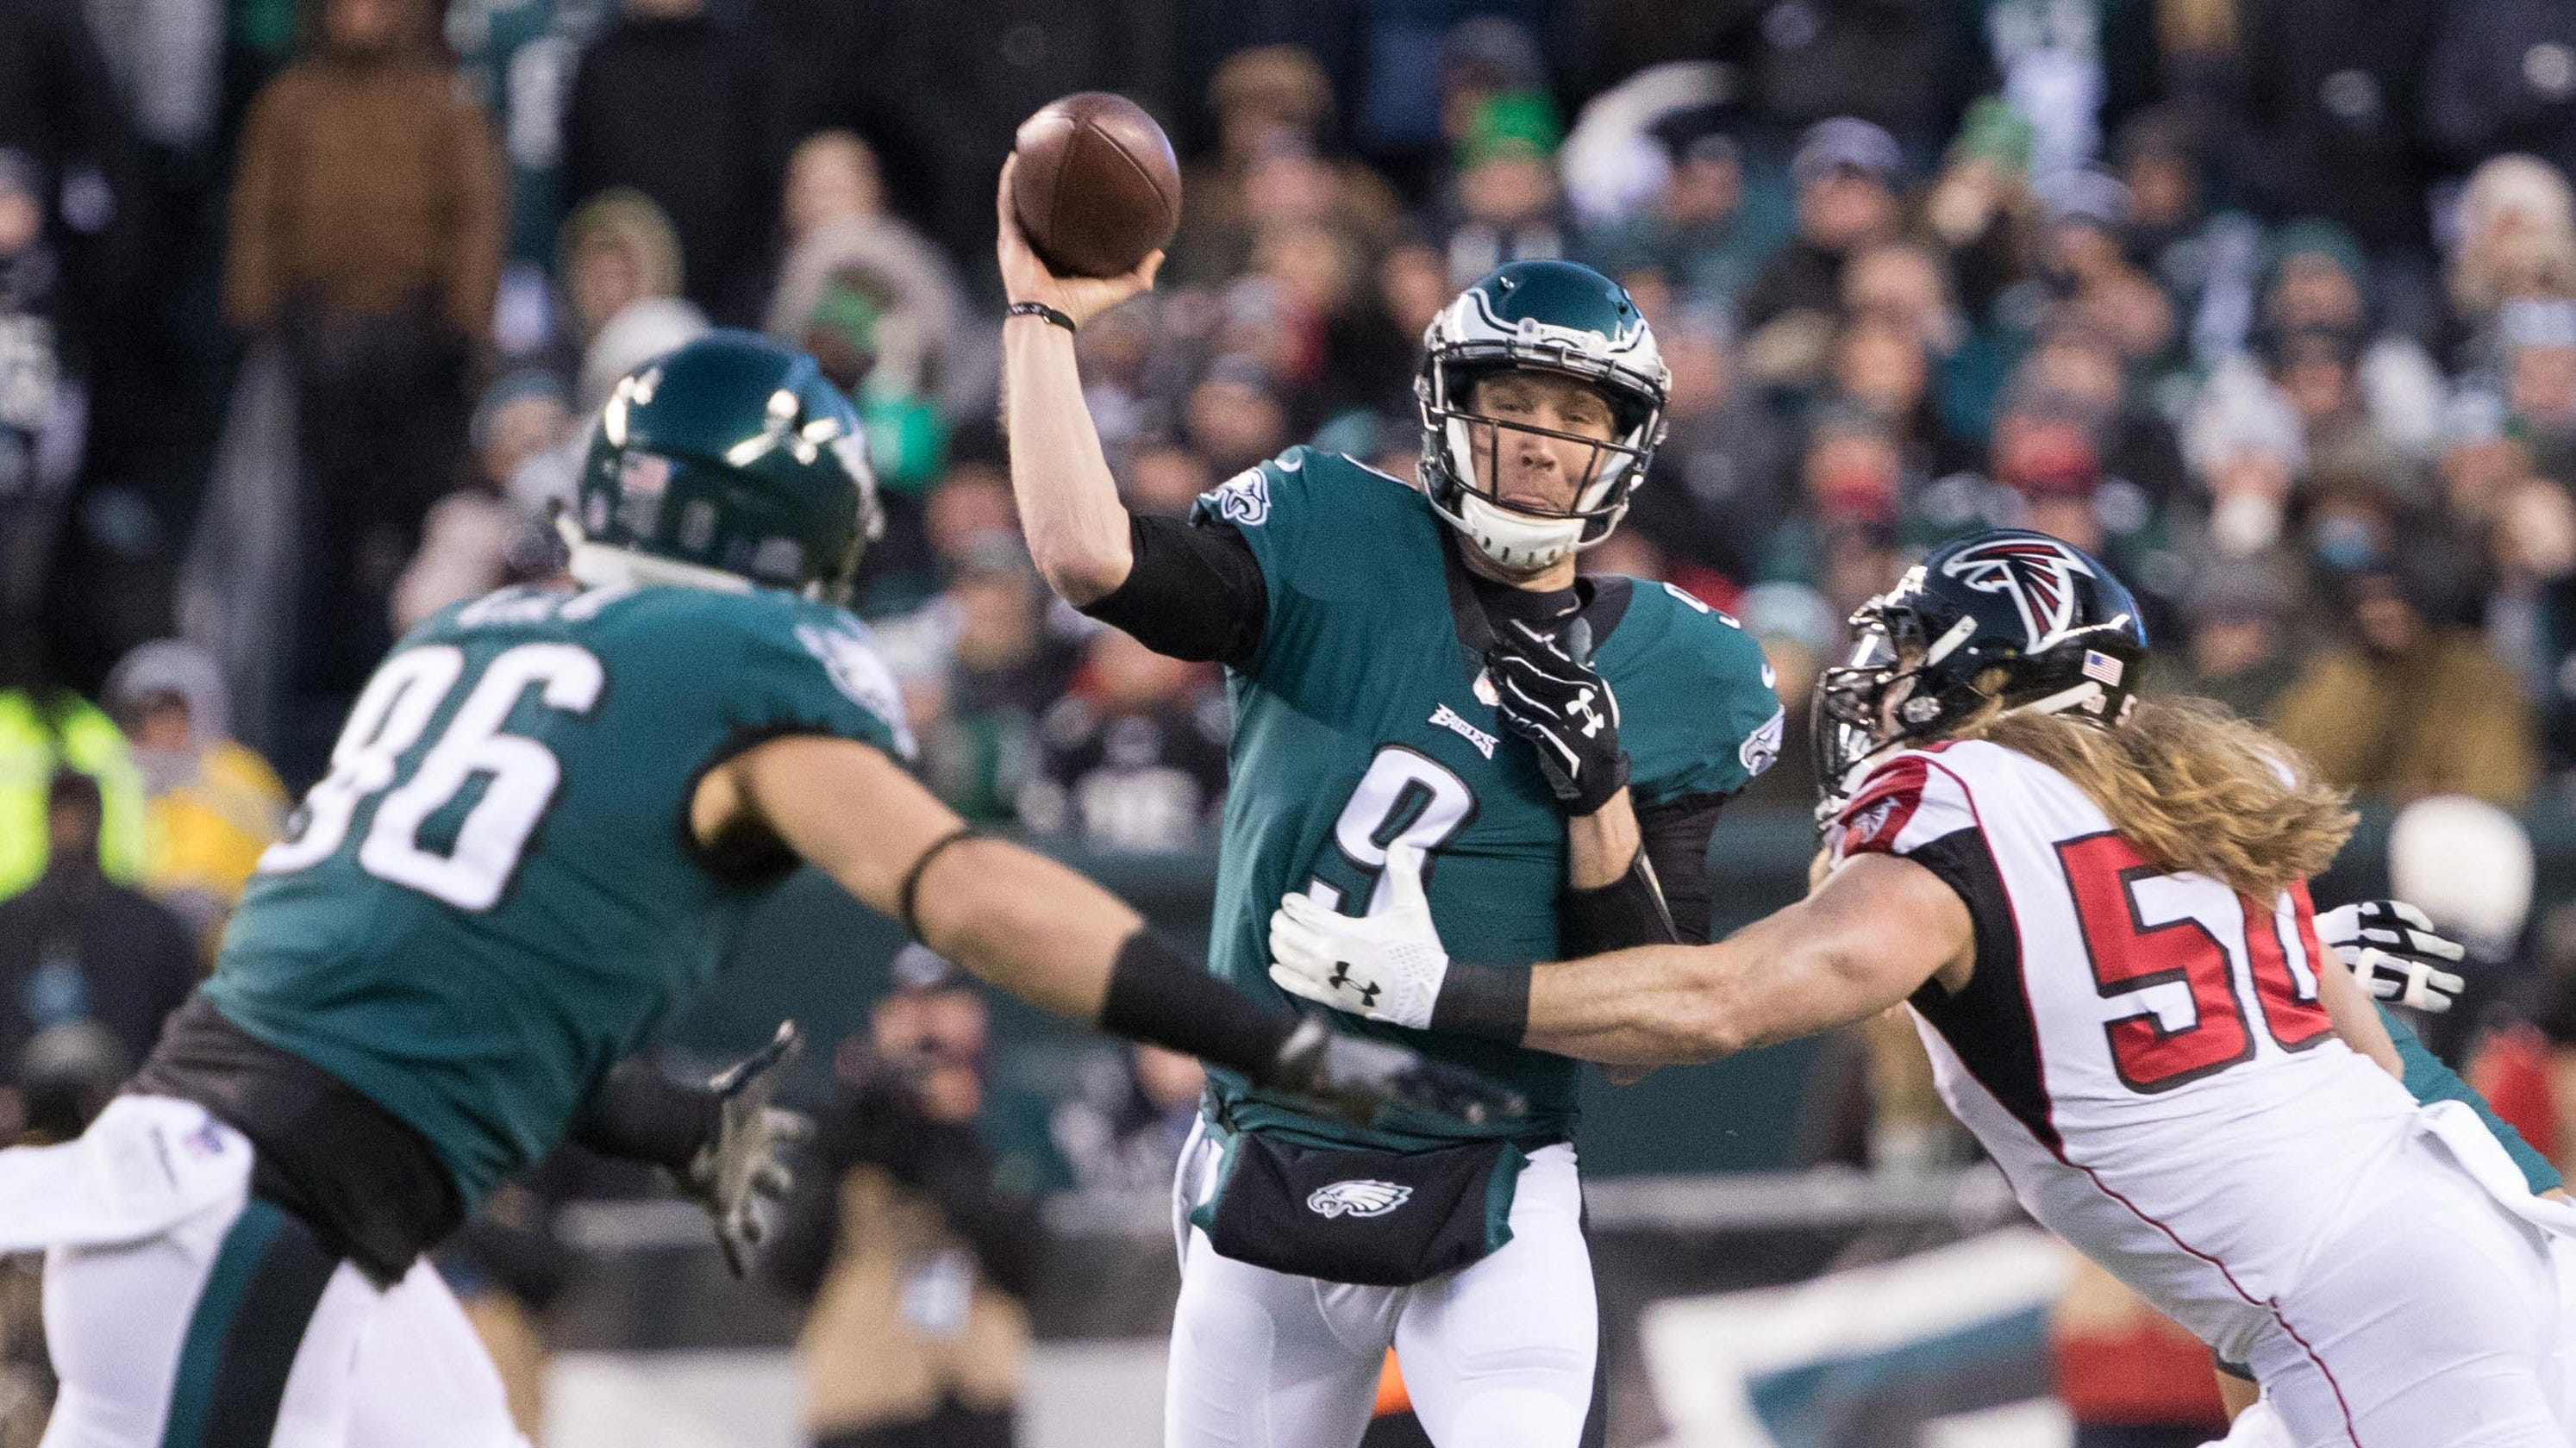 Eagles Preseason Tv Schedule Announcers Live Streaming And More